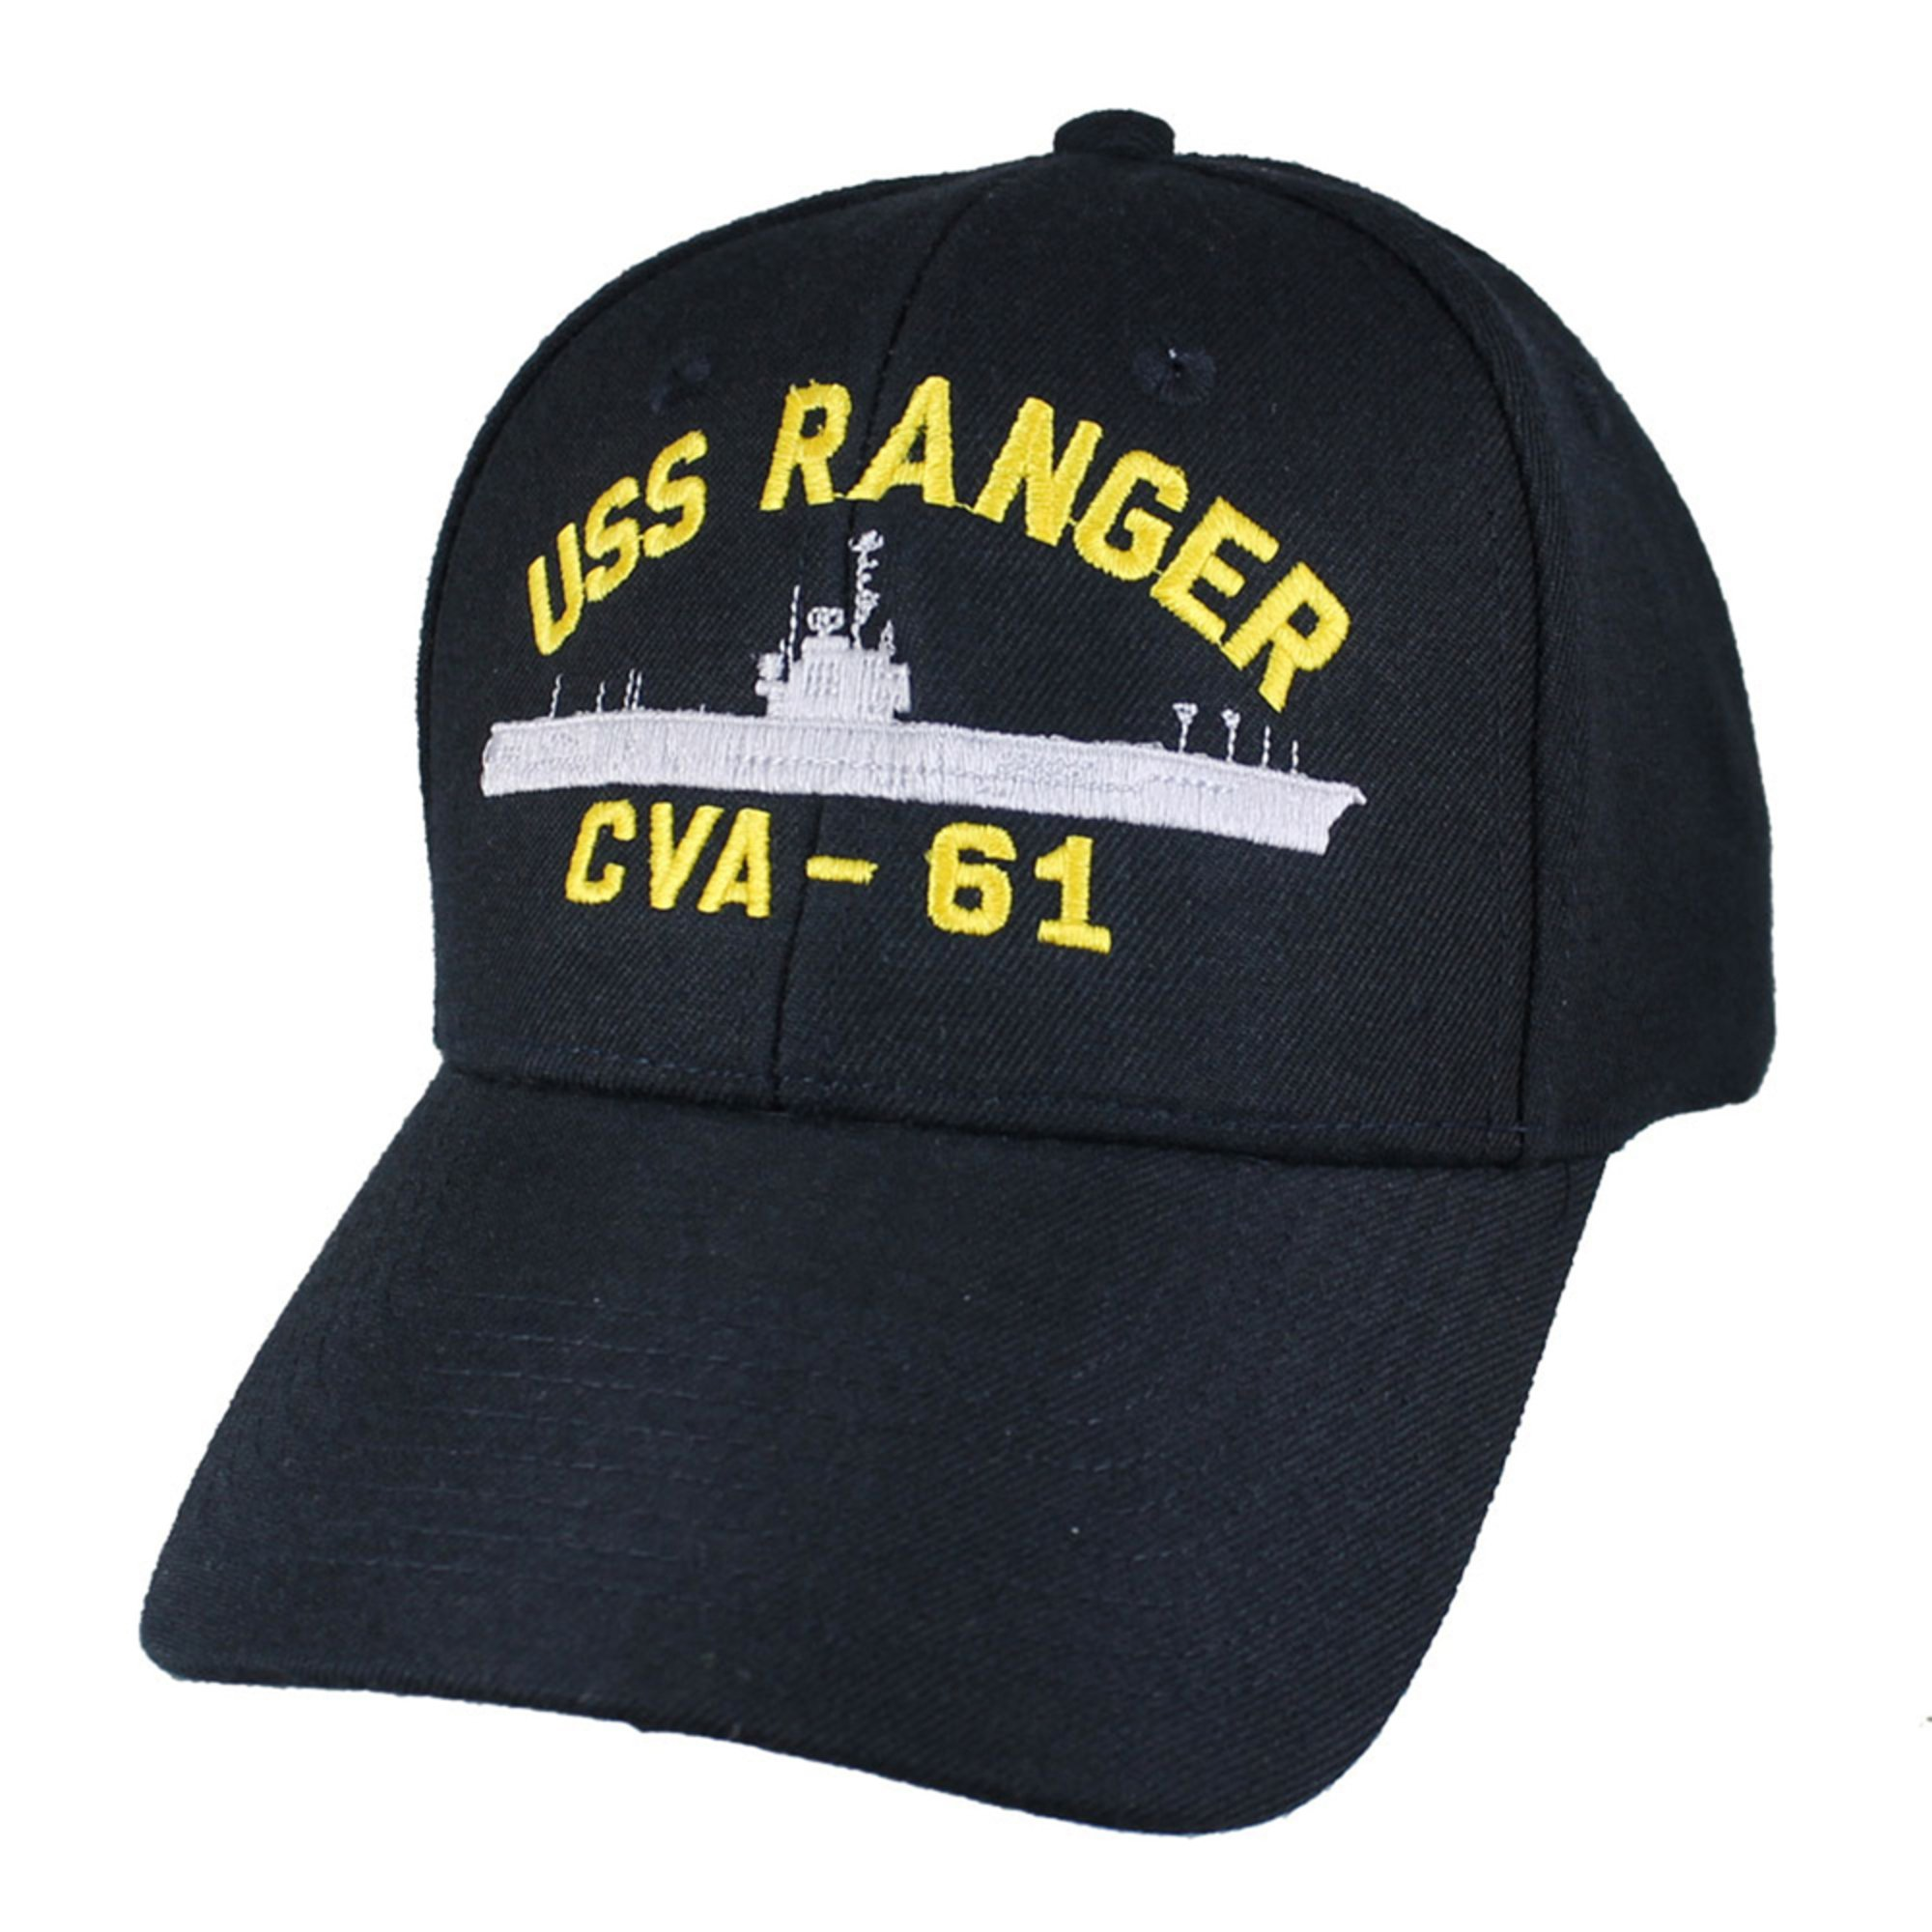 Eagle Crest US Air Force Veteran Hat For Men and Women Air Force Insignia Caps